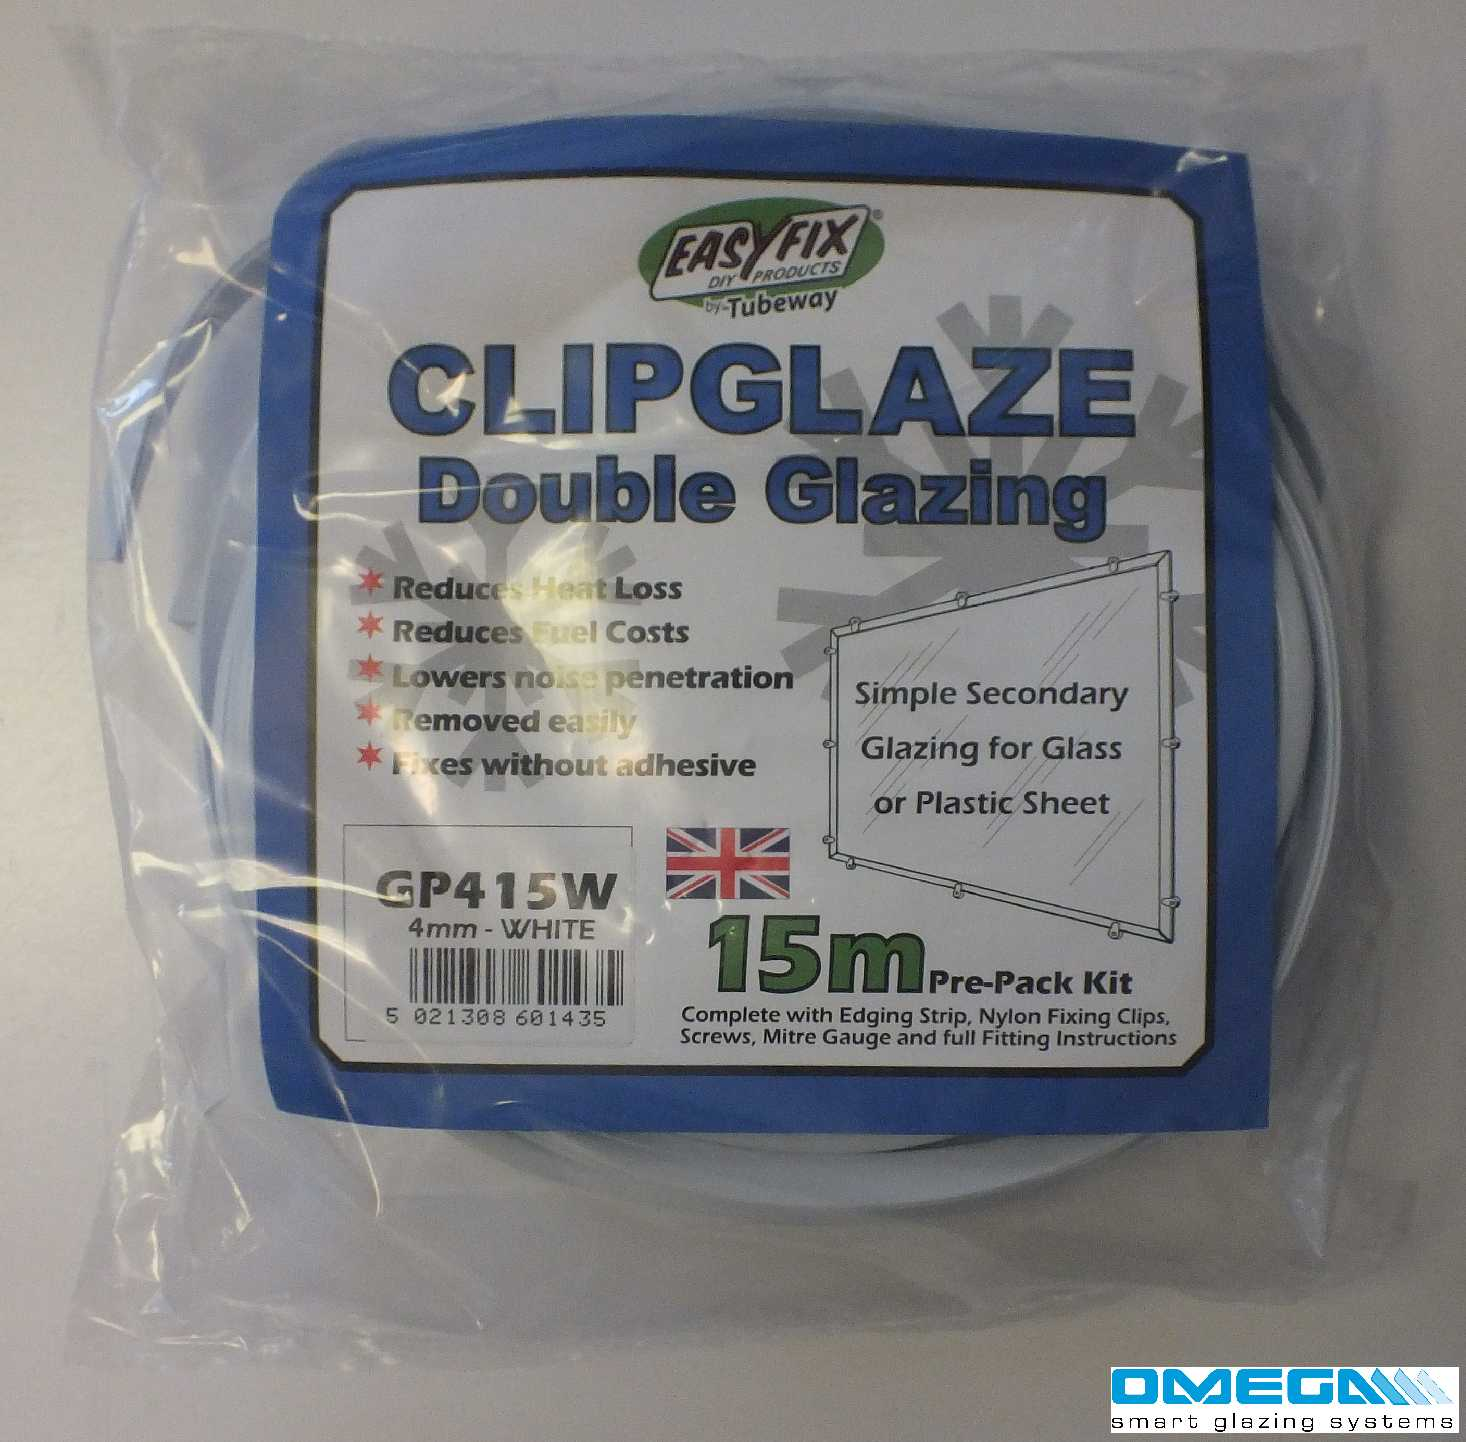 Buy Easyfix Clipglaze Edging Kit - 15m roll of edging for 3mm Glazing Thickness, White online today